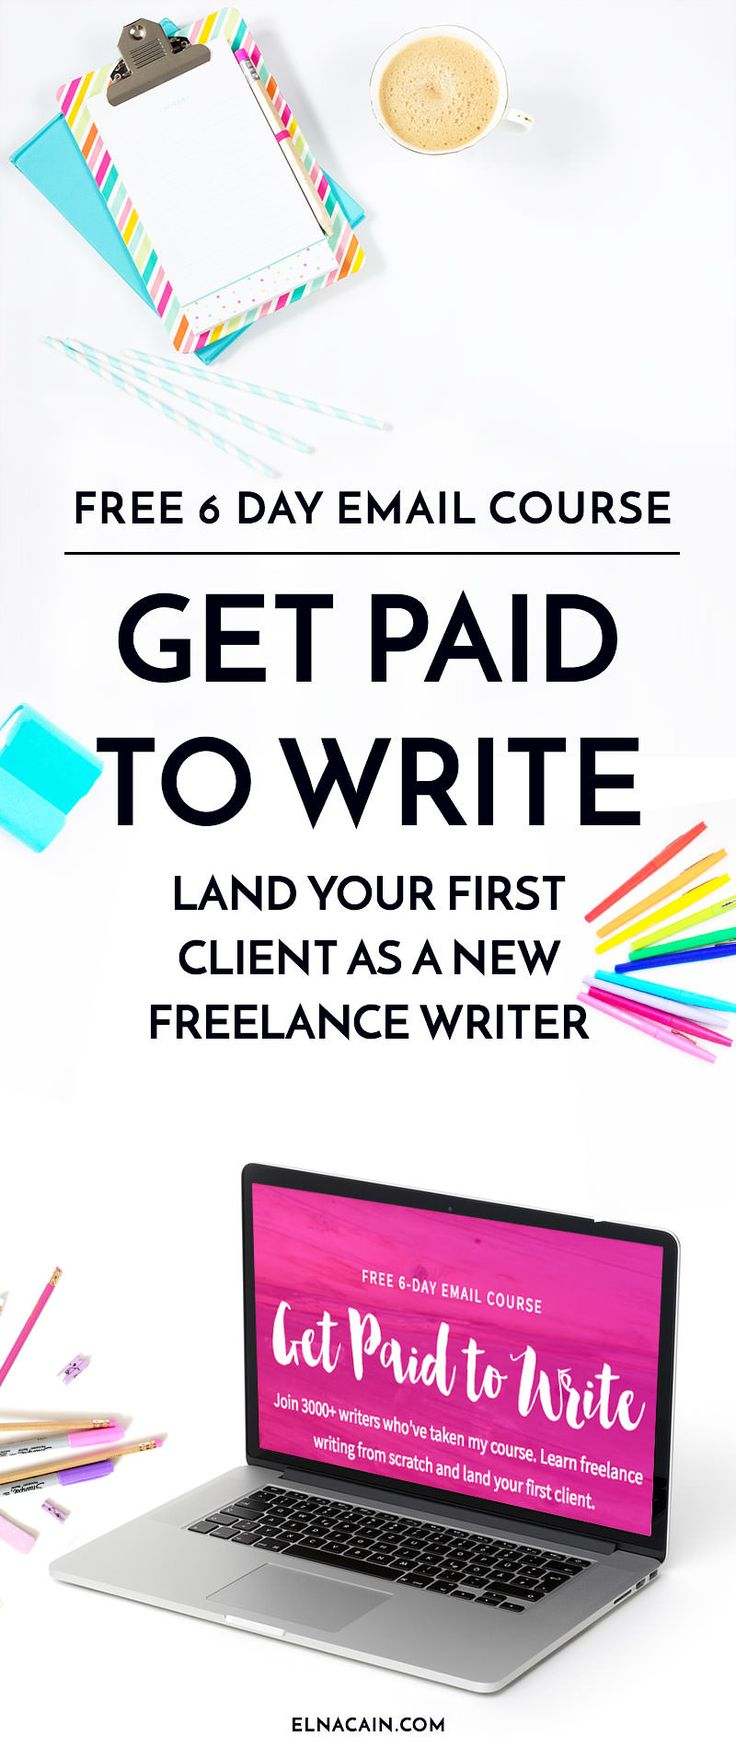 melhores ideias sobre writing jobs no escrita get paid to write online